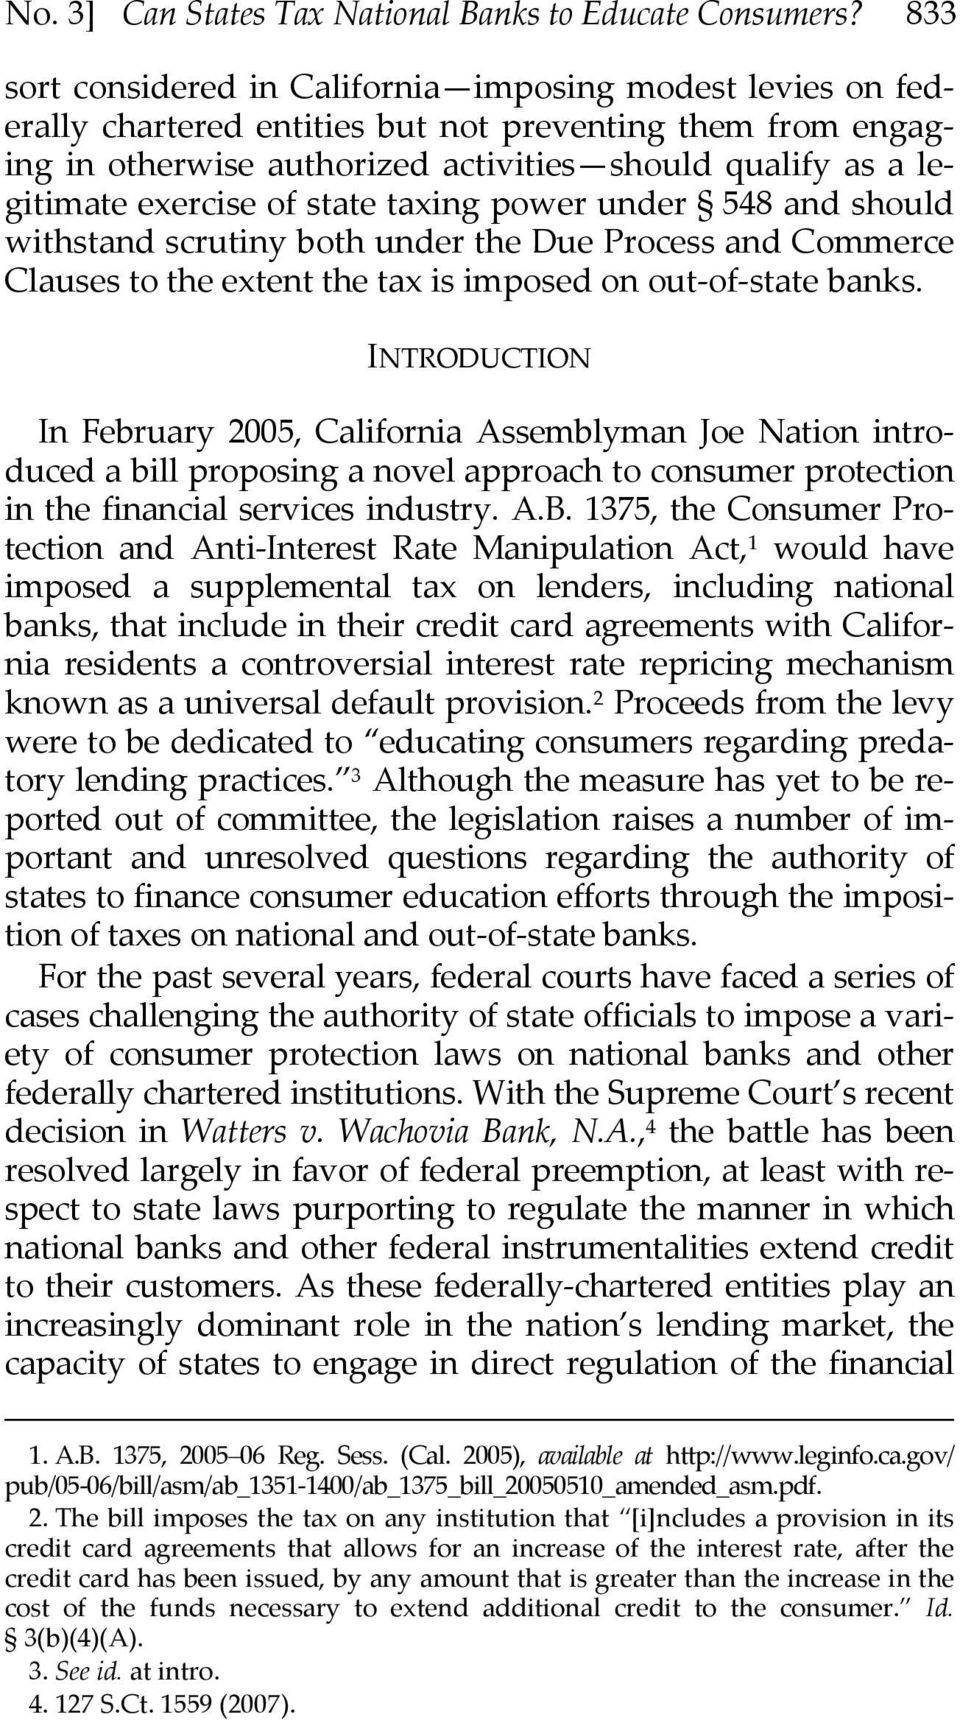 exercise of state taxing power under 548 and should withstand scrutiny both under the Due Process and Commerce Clauses to the extent the tax is imposed on out of state banks.